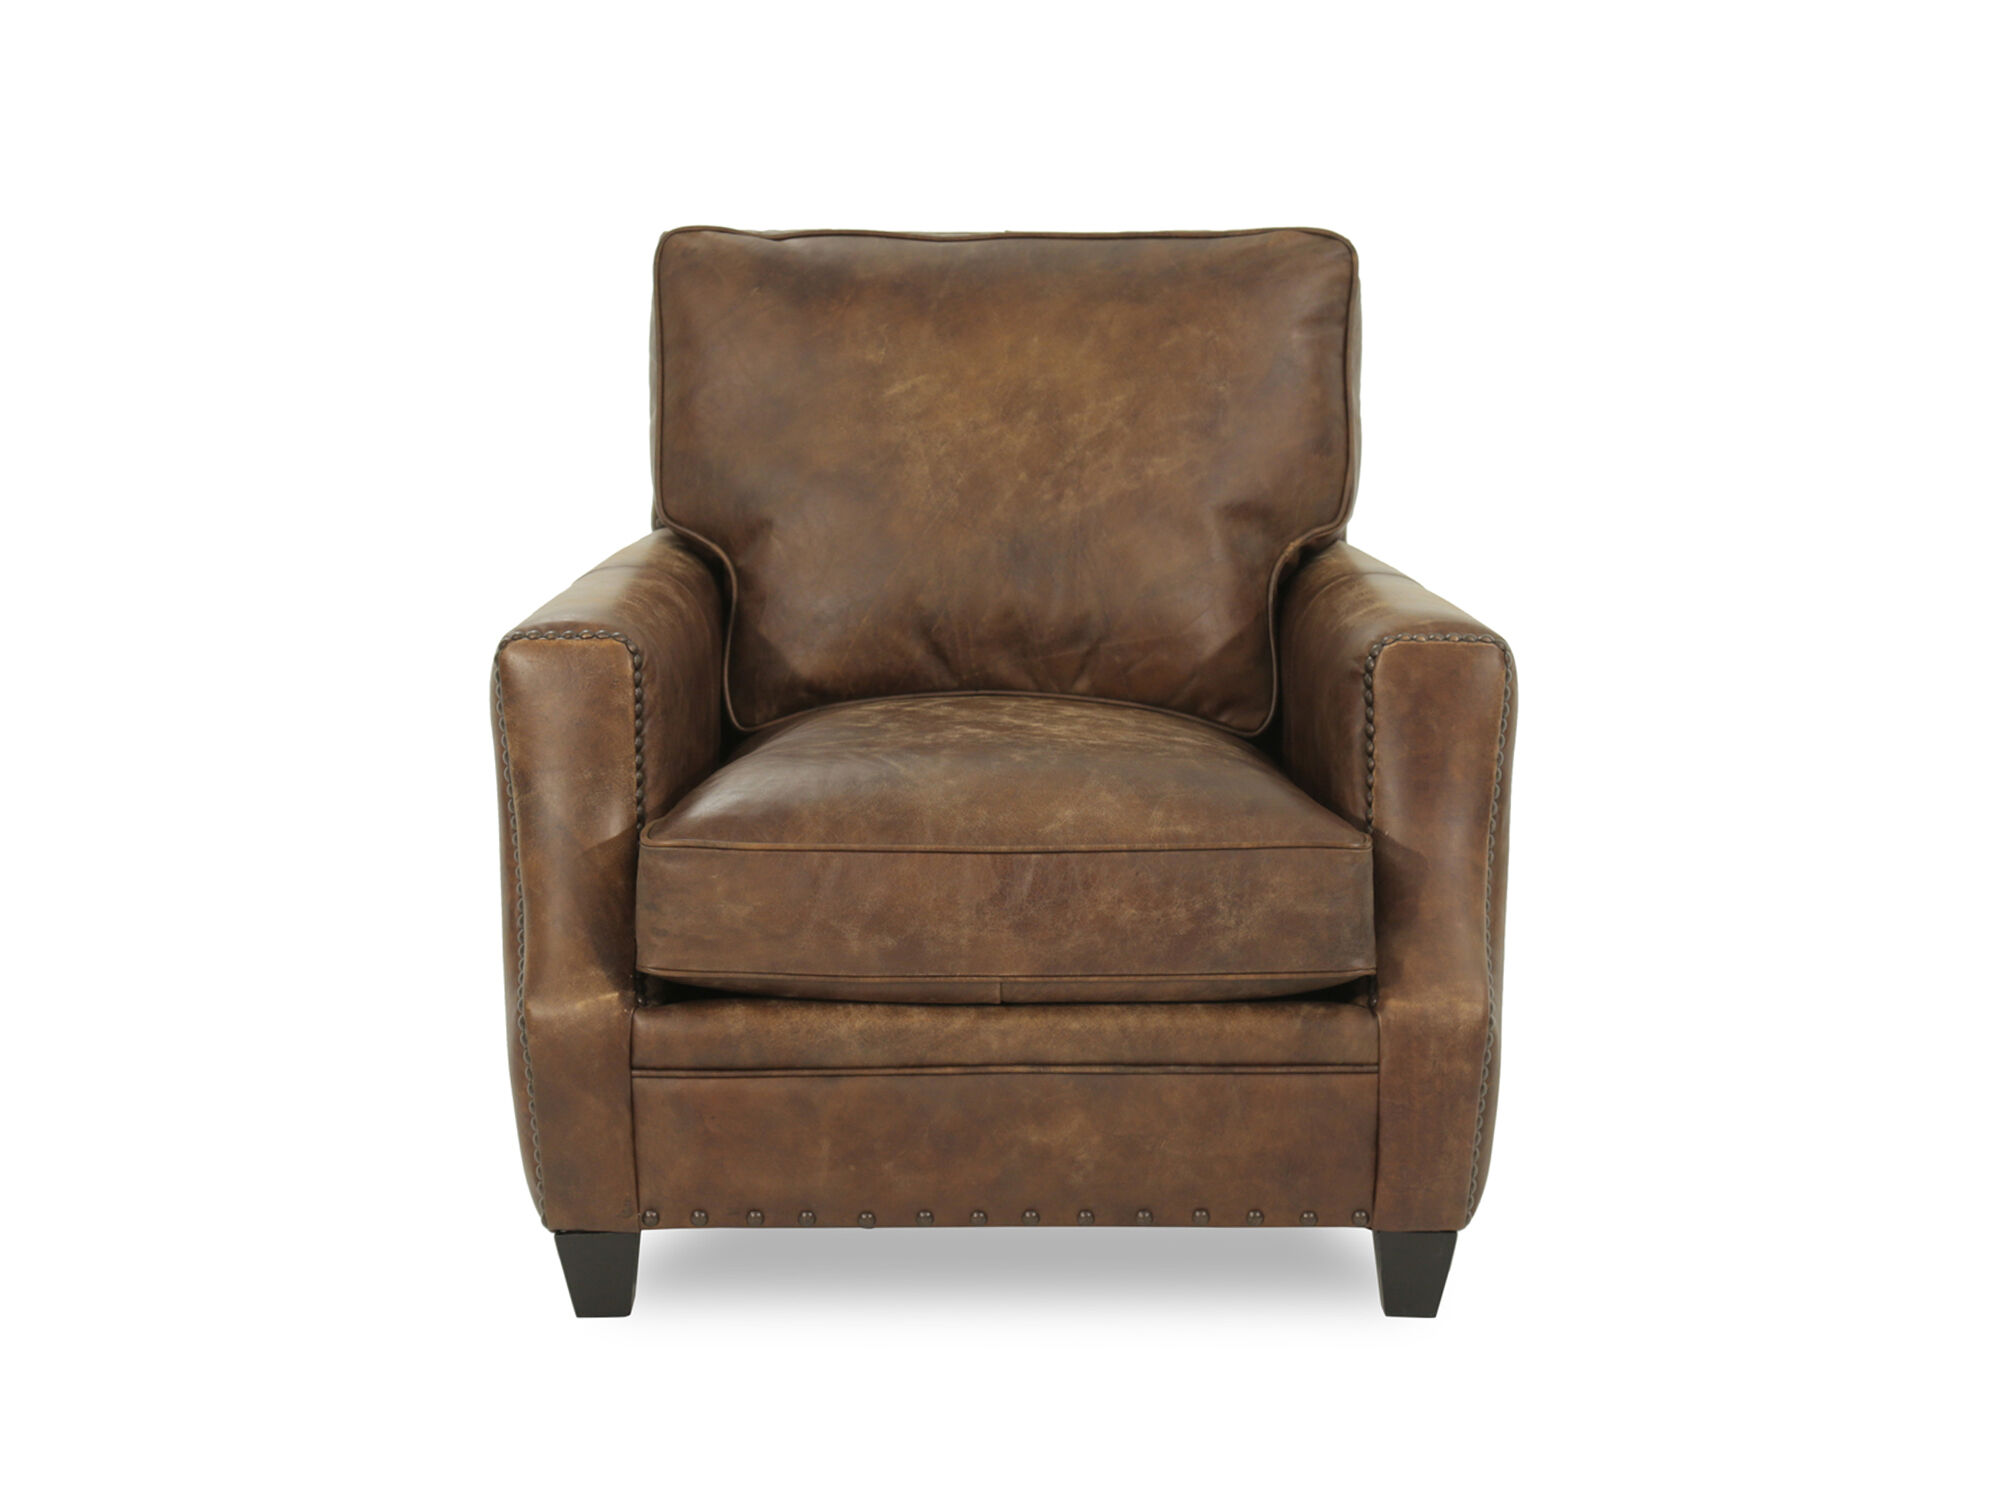 Bernhardt Barclay Leather Mocha Chair  Mathis Brothers